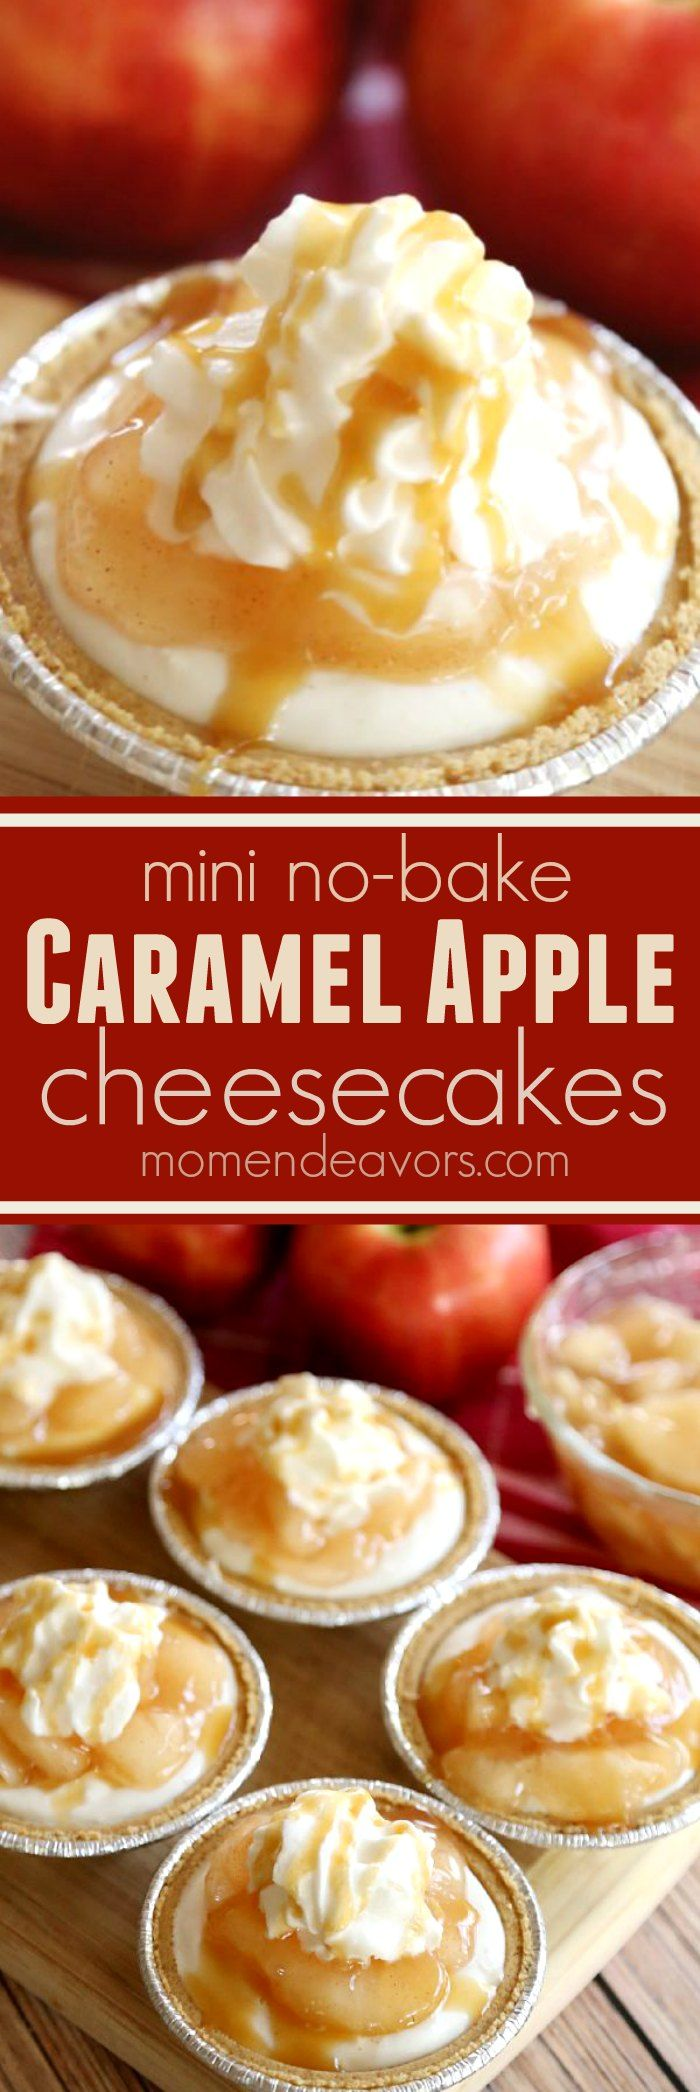 Mini No-Bake Caramel Apple Cheesecakes - Mom Endeavors